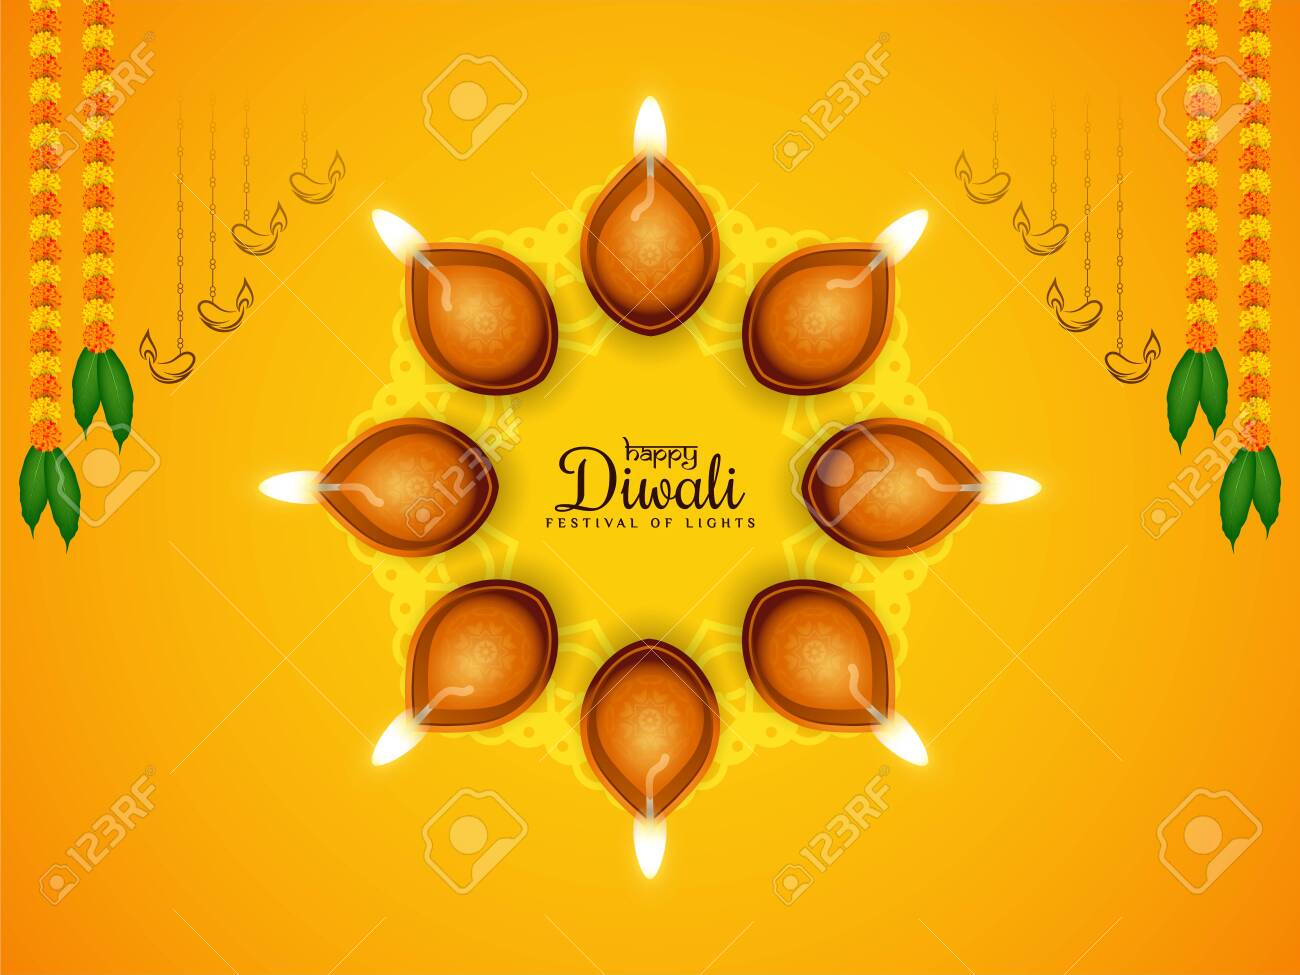 Abstract Happy Diwali festival bright yellow background design vector - 158213851